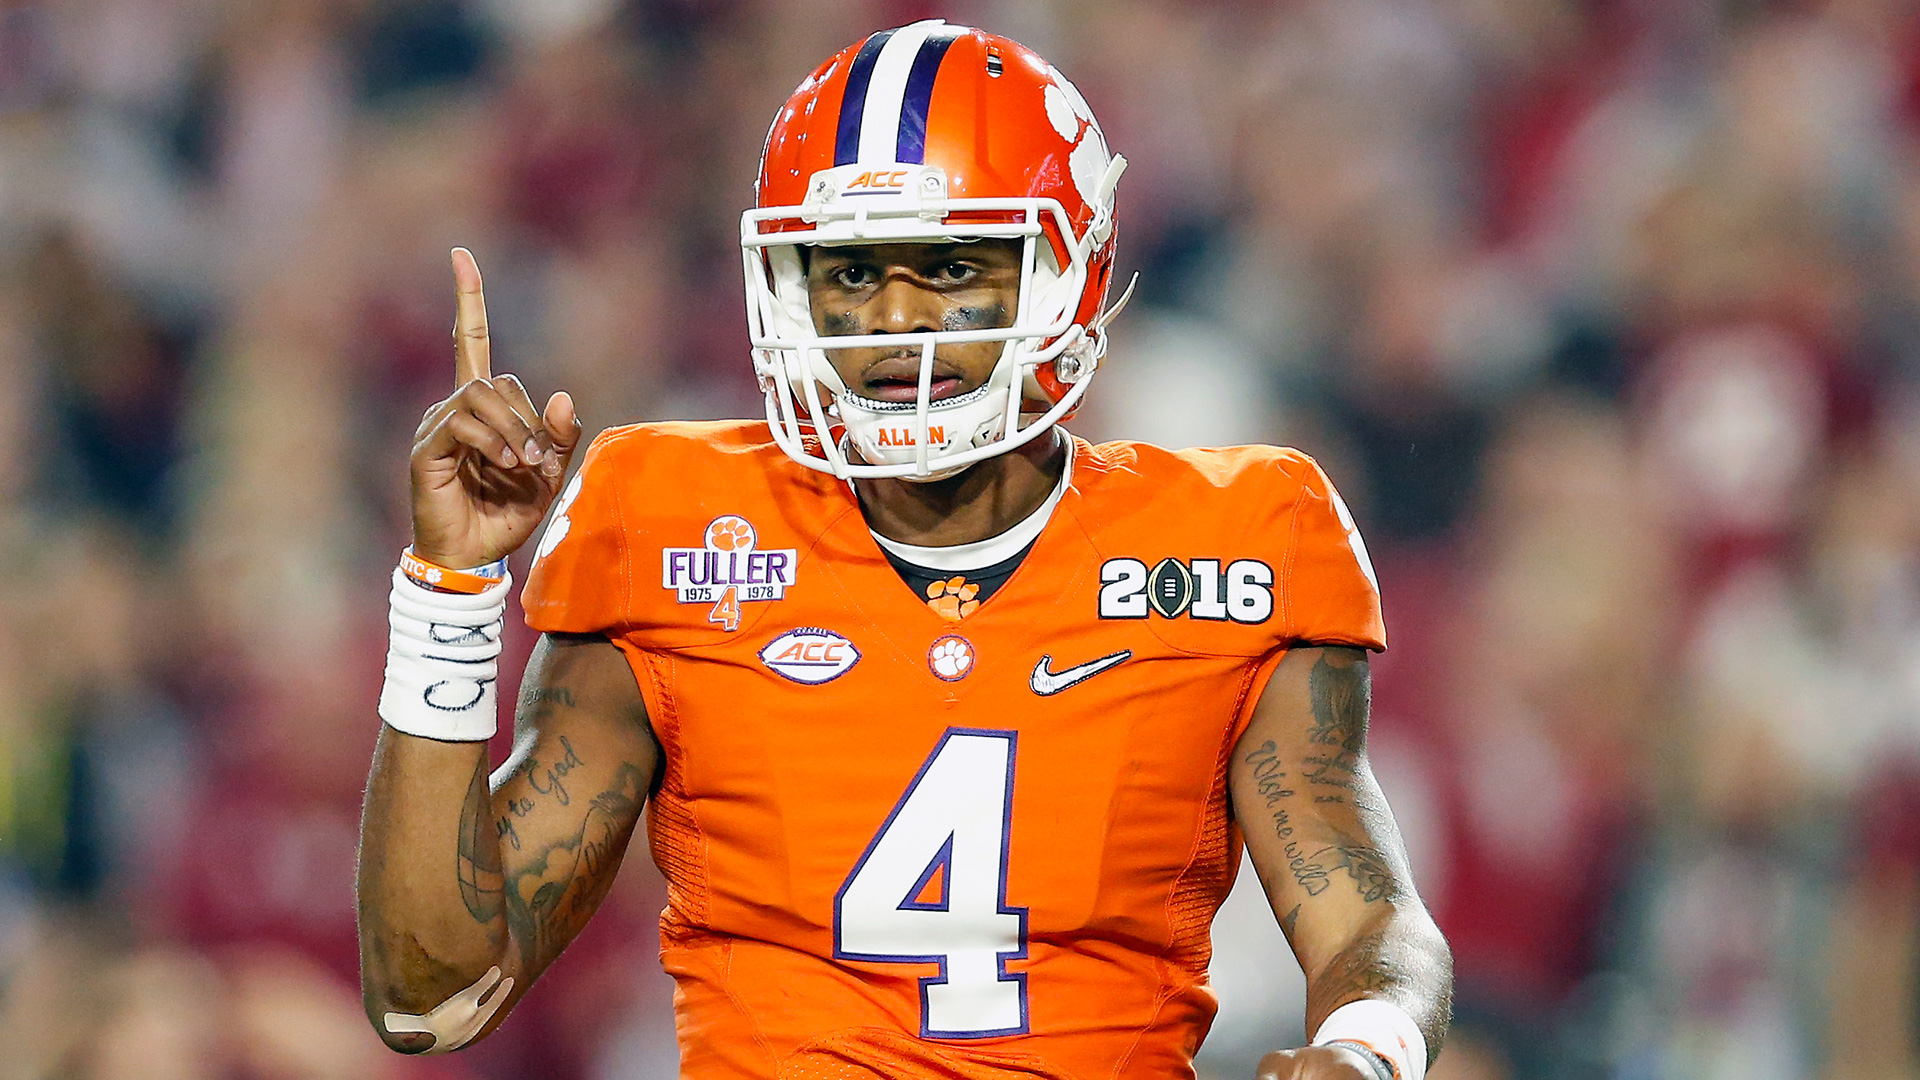 Football Rankings For Playoffs >> Deshaun Watson's subtle guarantee exactly what Clemson needs | NCAA Football | Sporting News